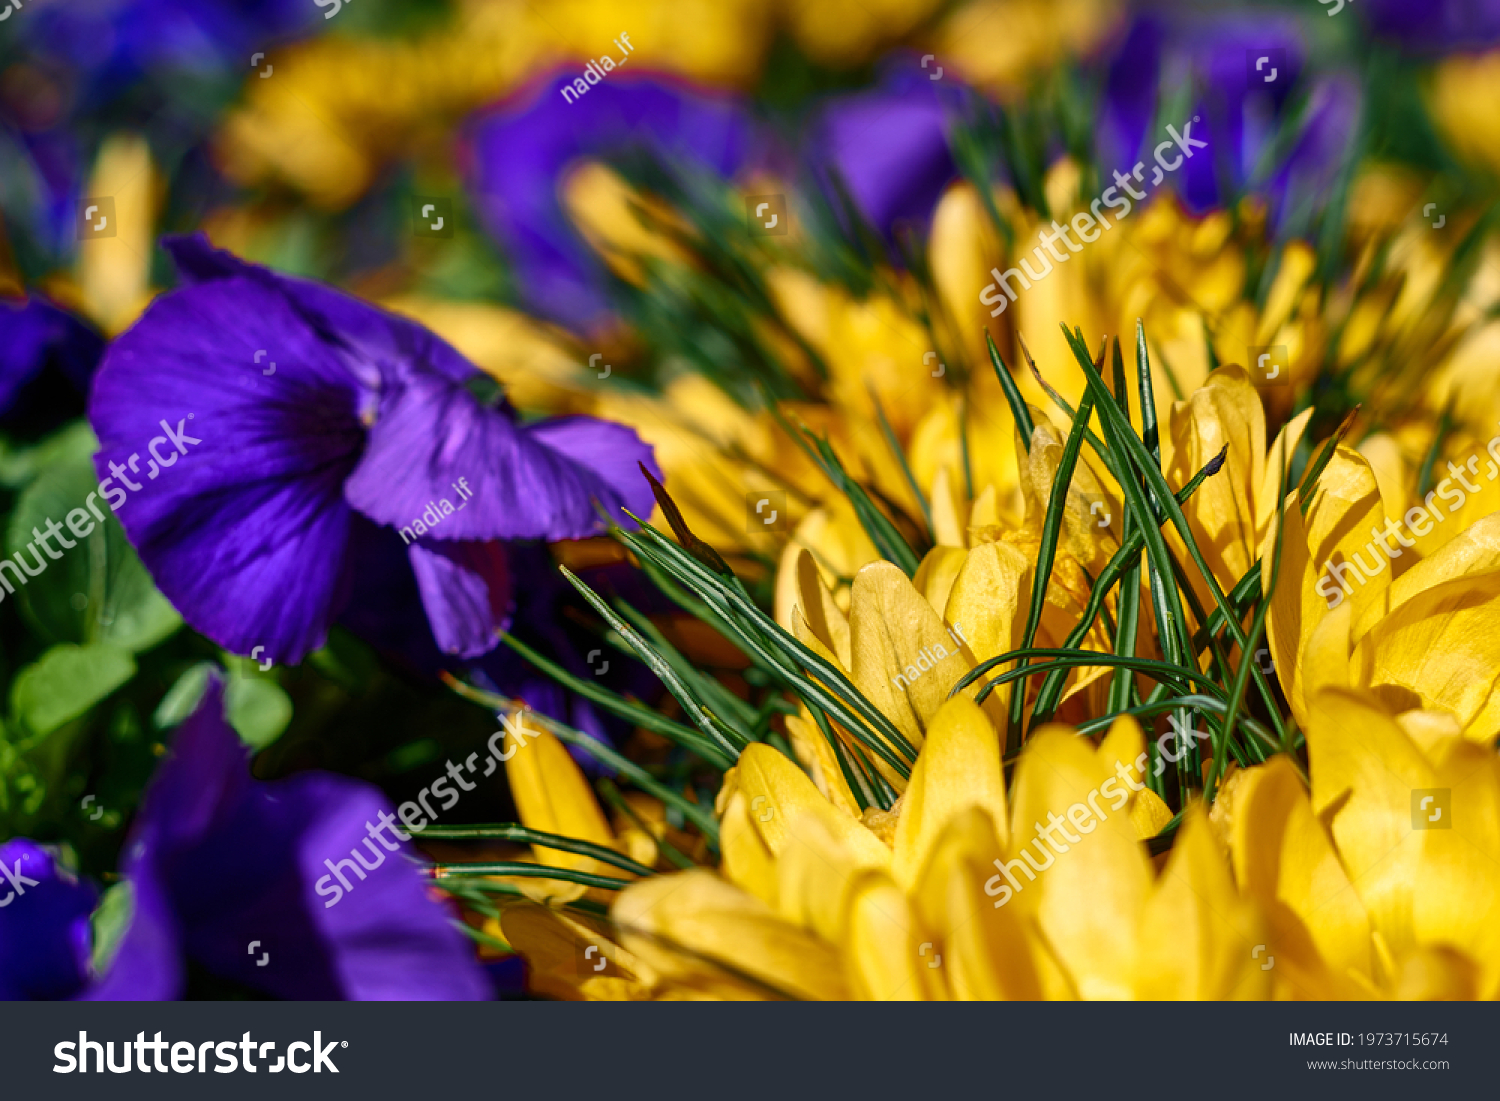 beautiful yellow crocus and purple pansies in blooming. High quality photo #1973715674